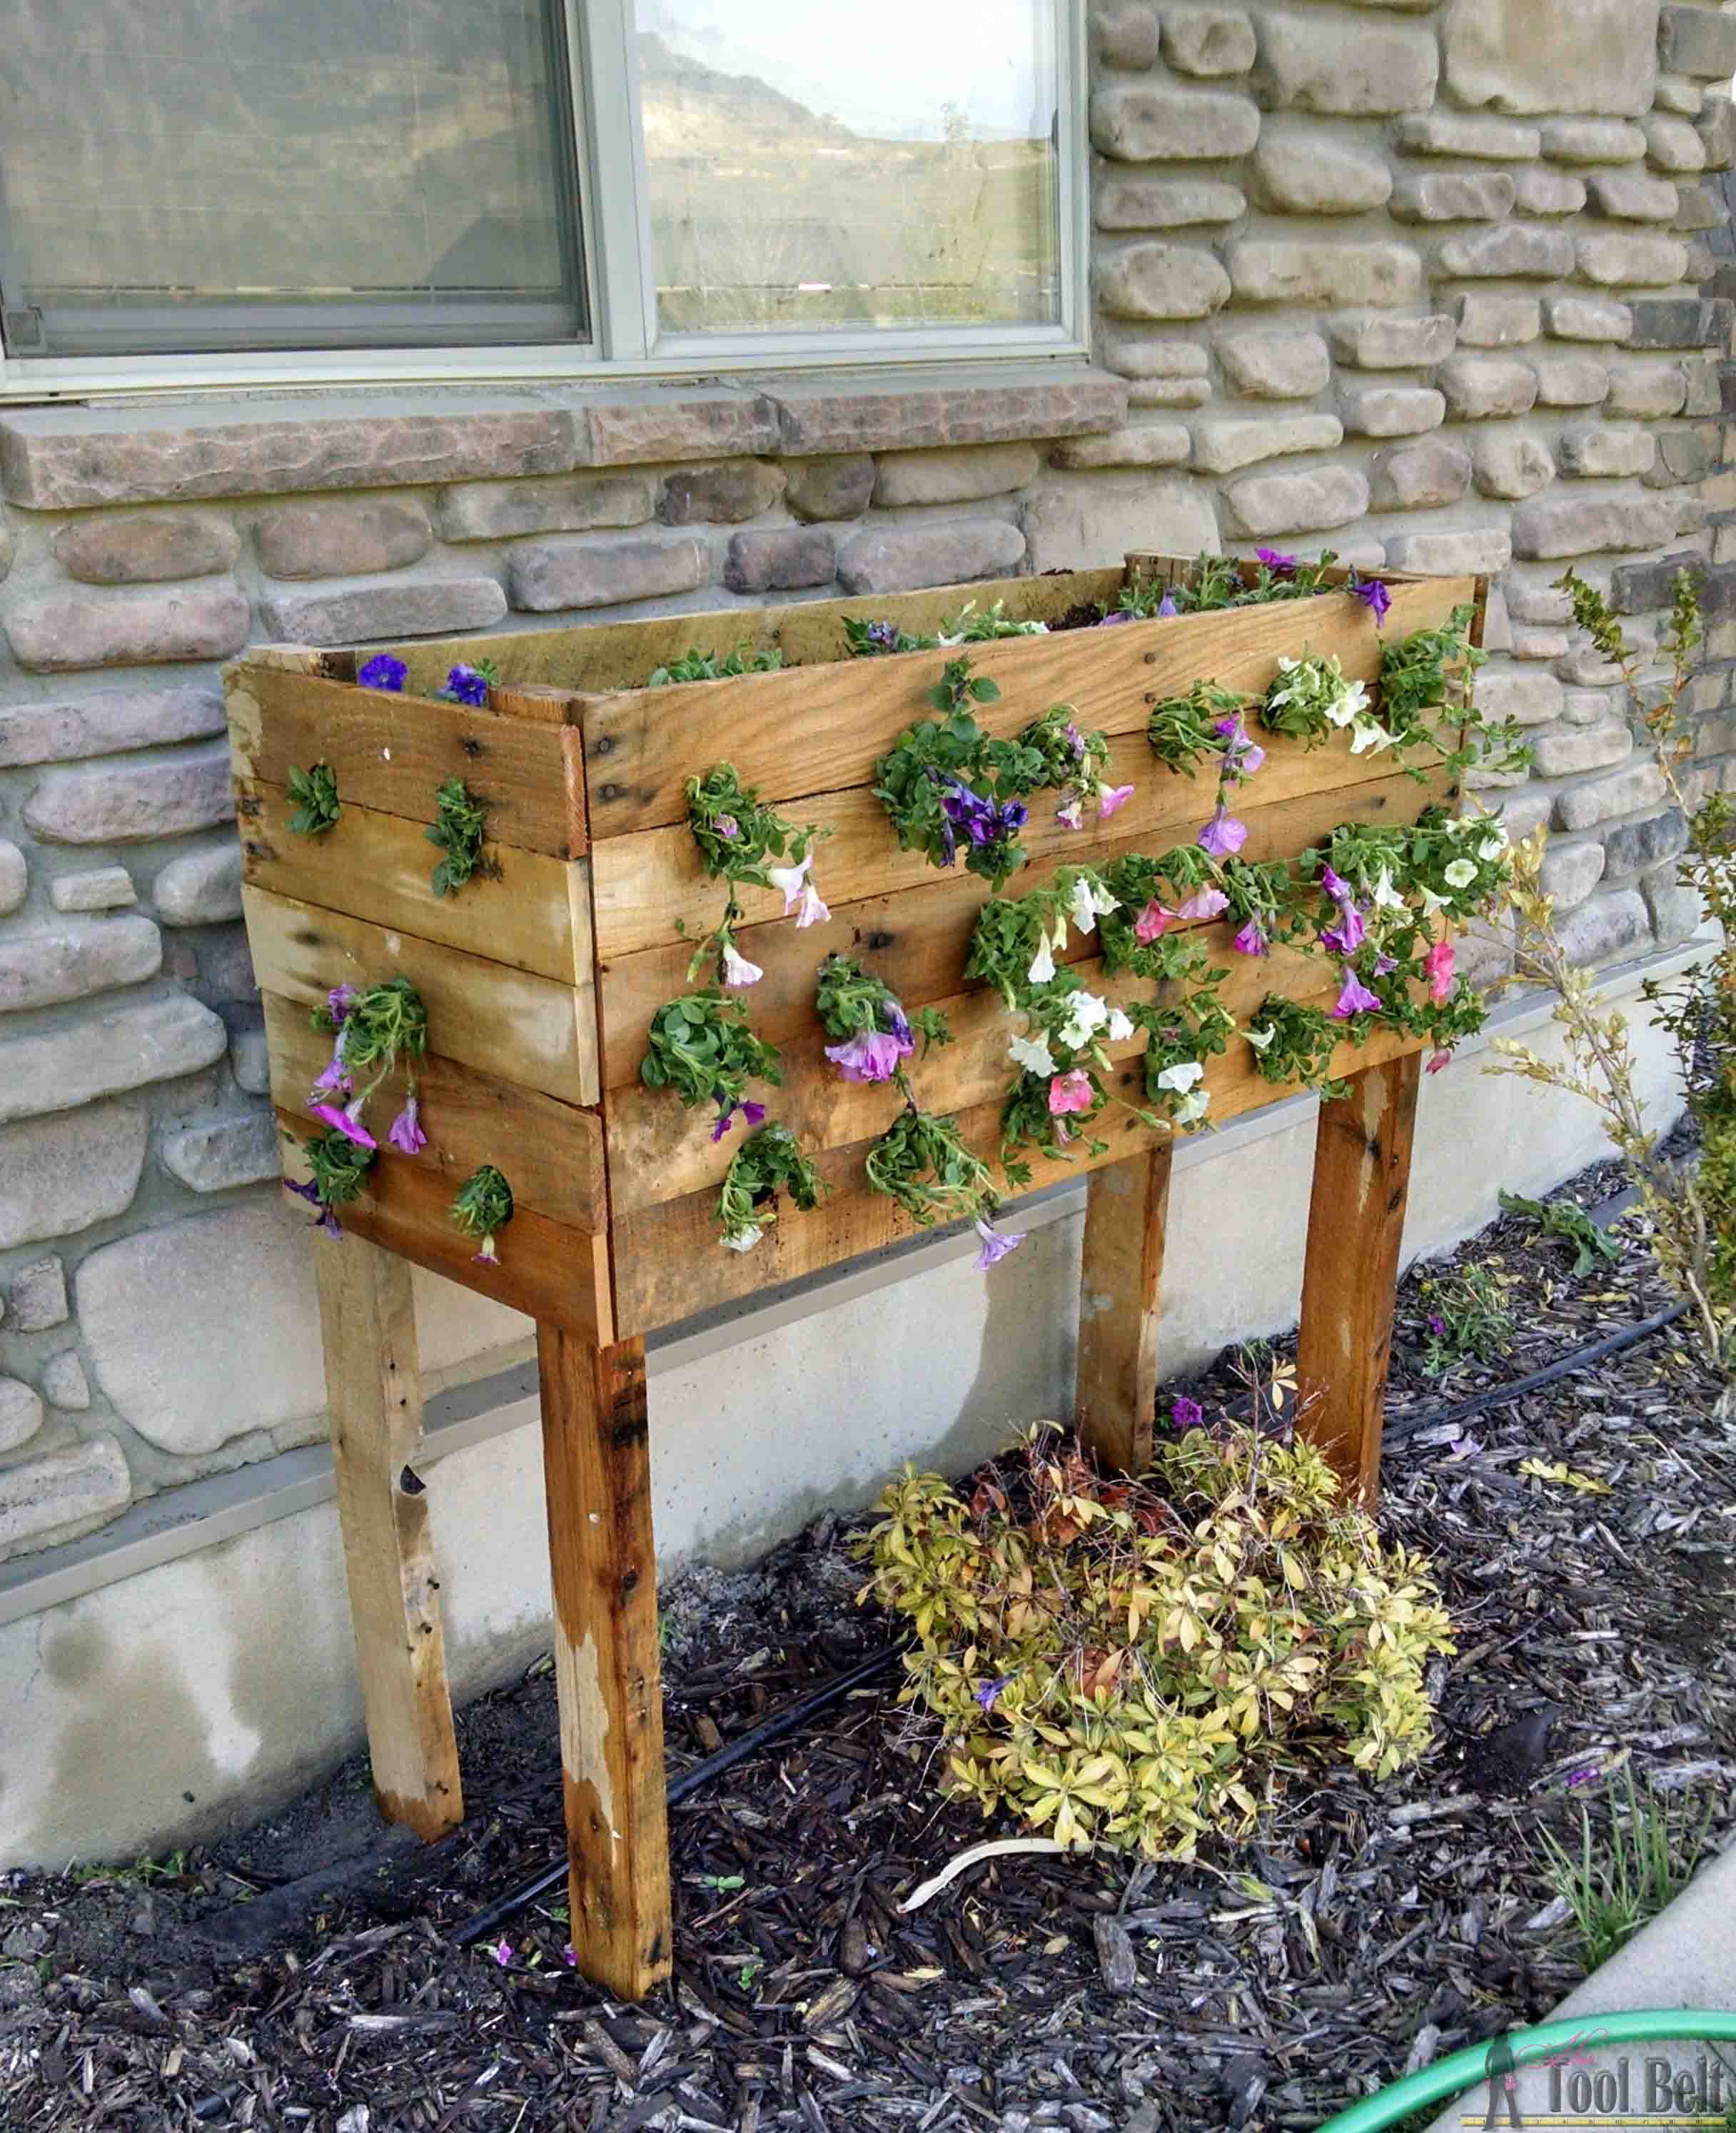 Diy Planter Box From Pallets Check Out These Flowers Diy Pallet Planter Box For Those